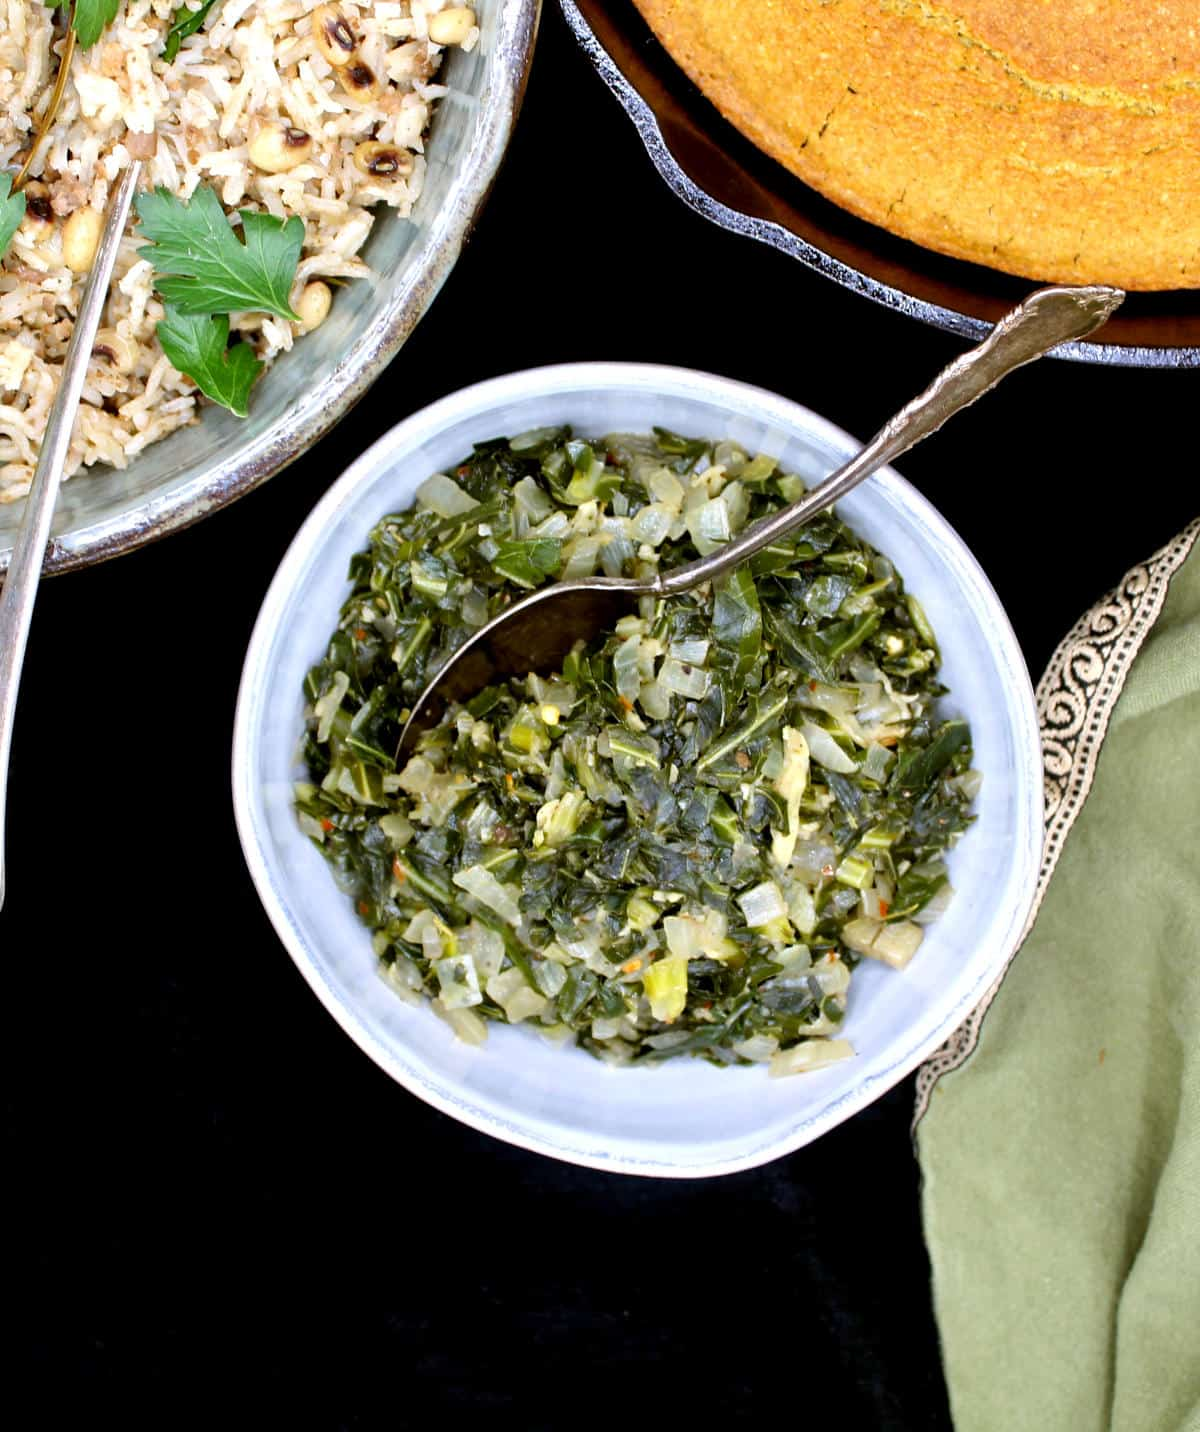 Braised southern style collard greens in a ceramic gray bowl with a silver spoon, vegan cornbread and vegan Hoppin' John.